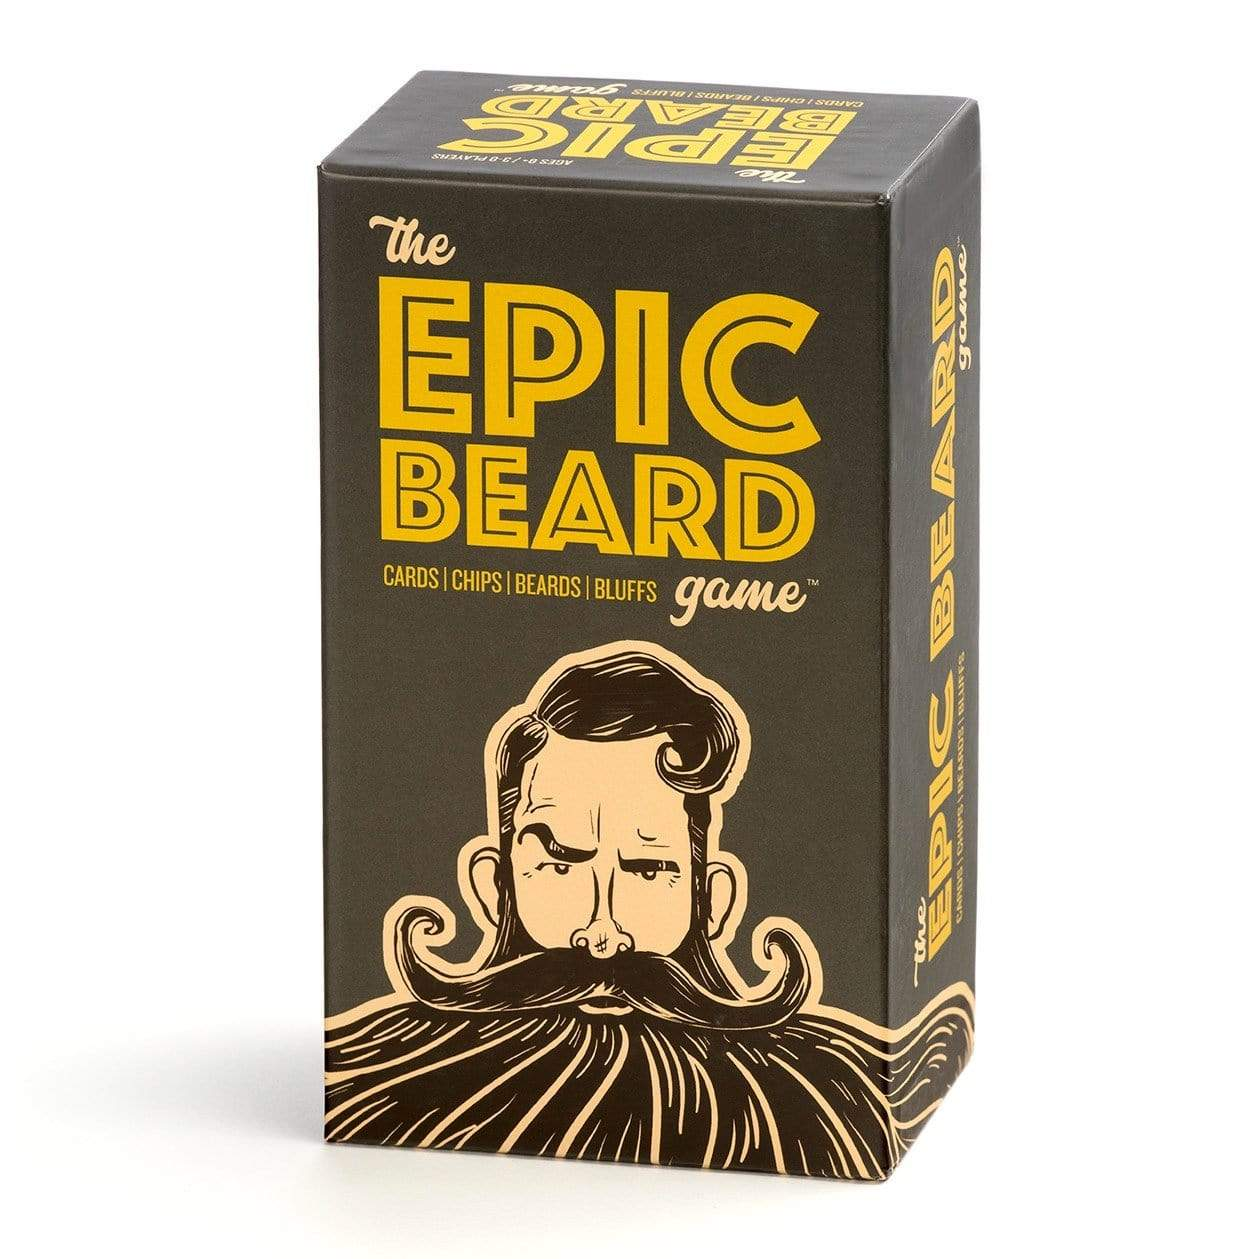 Epic Beard Game The Good Game Co. Board Games